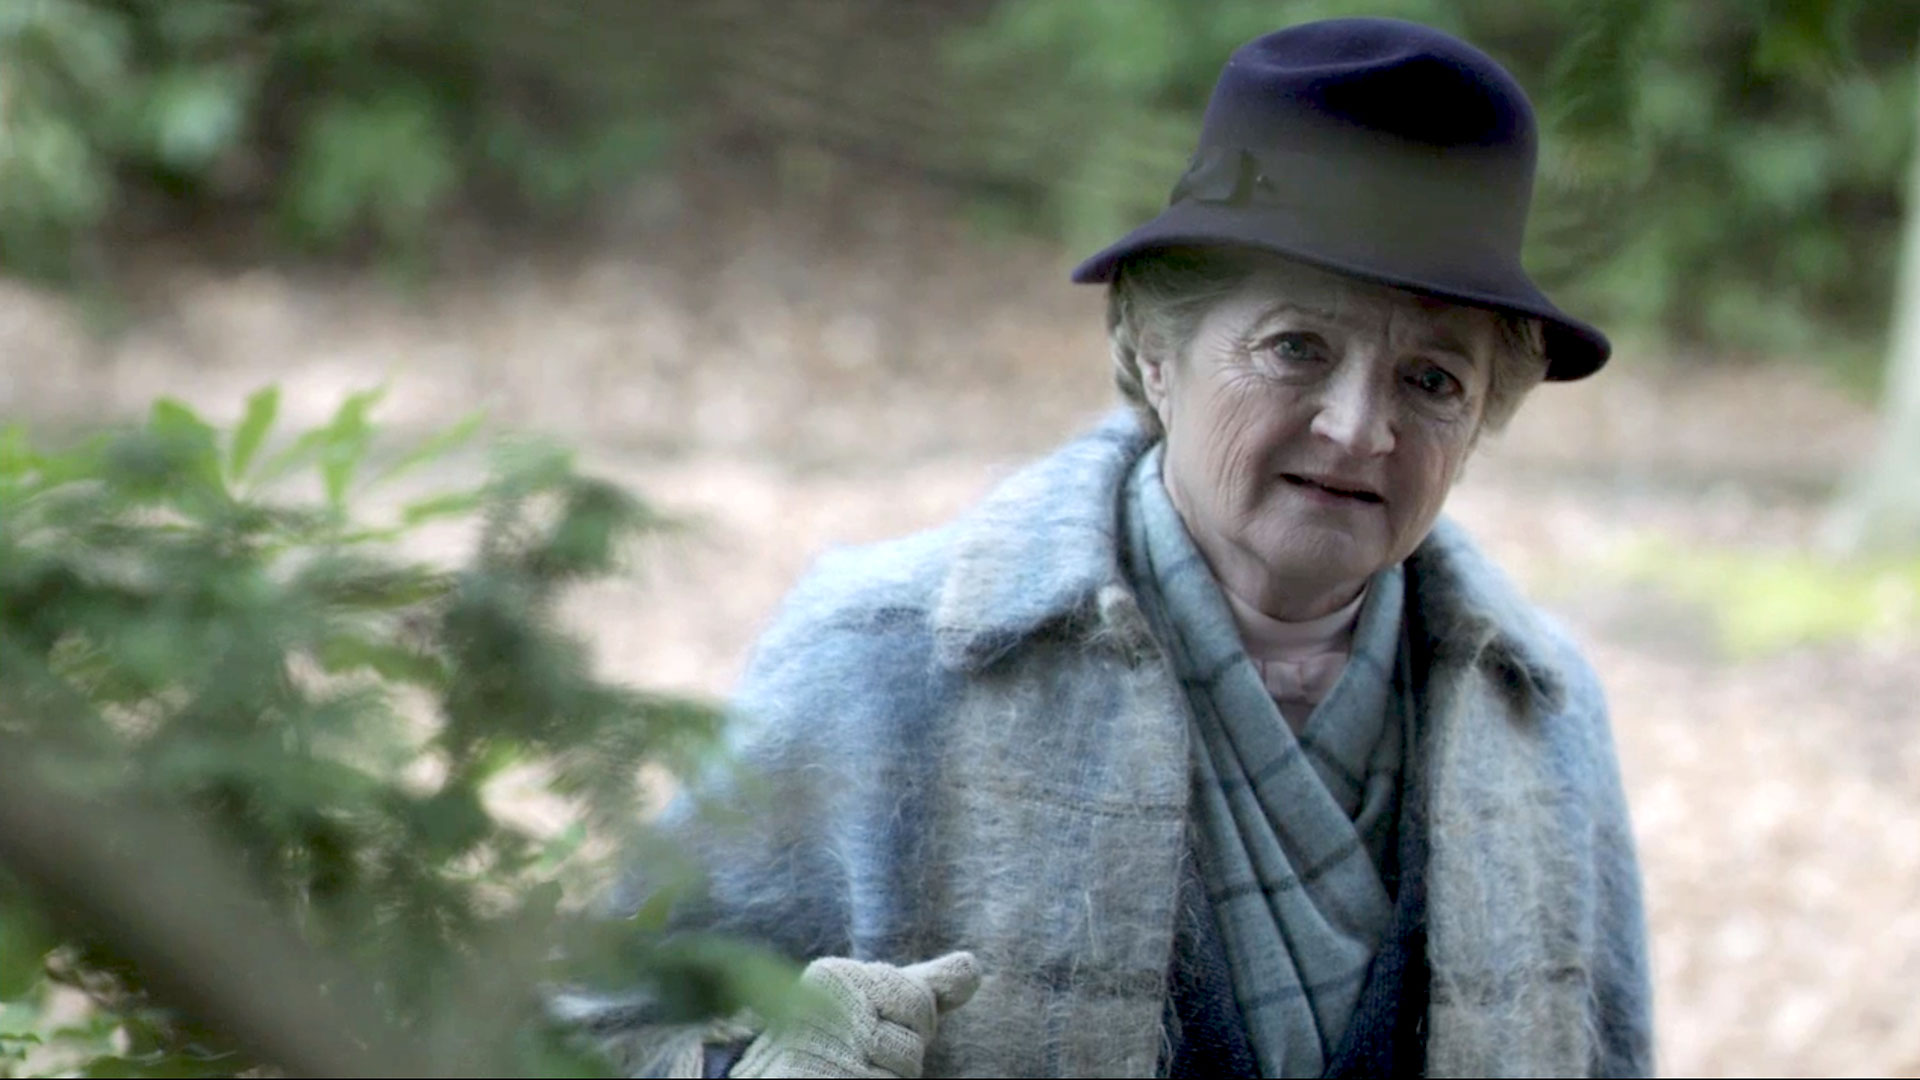 Julia McKenzie plays Miss Marple on episodes of Miss Marple on Masterpiece Mystery!